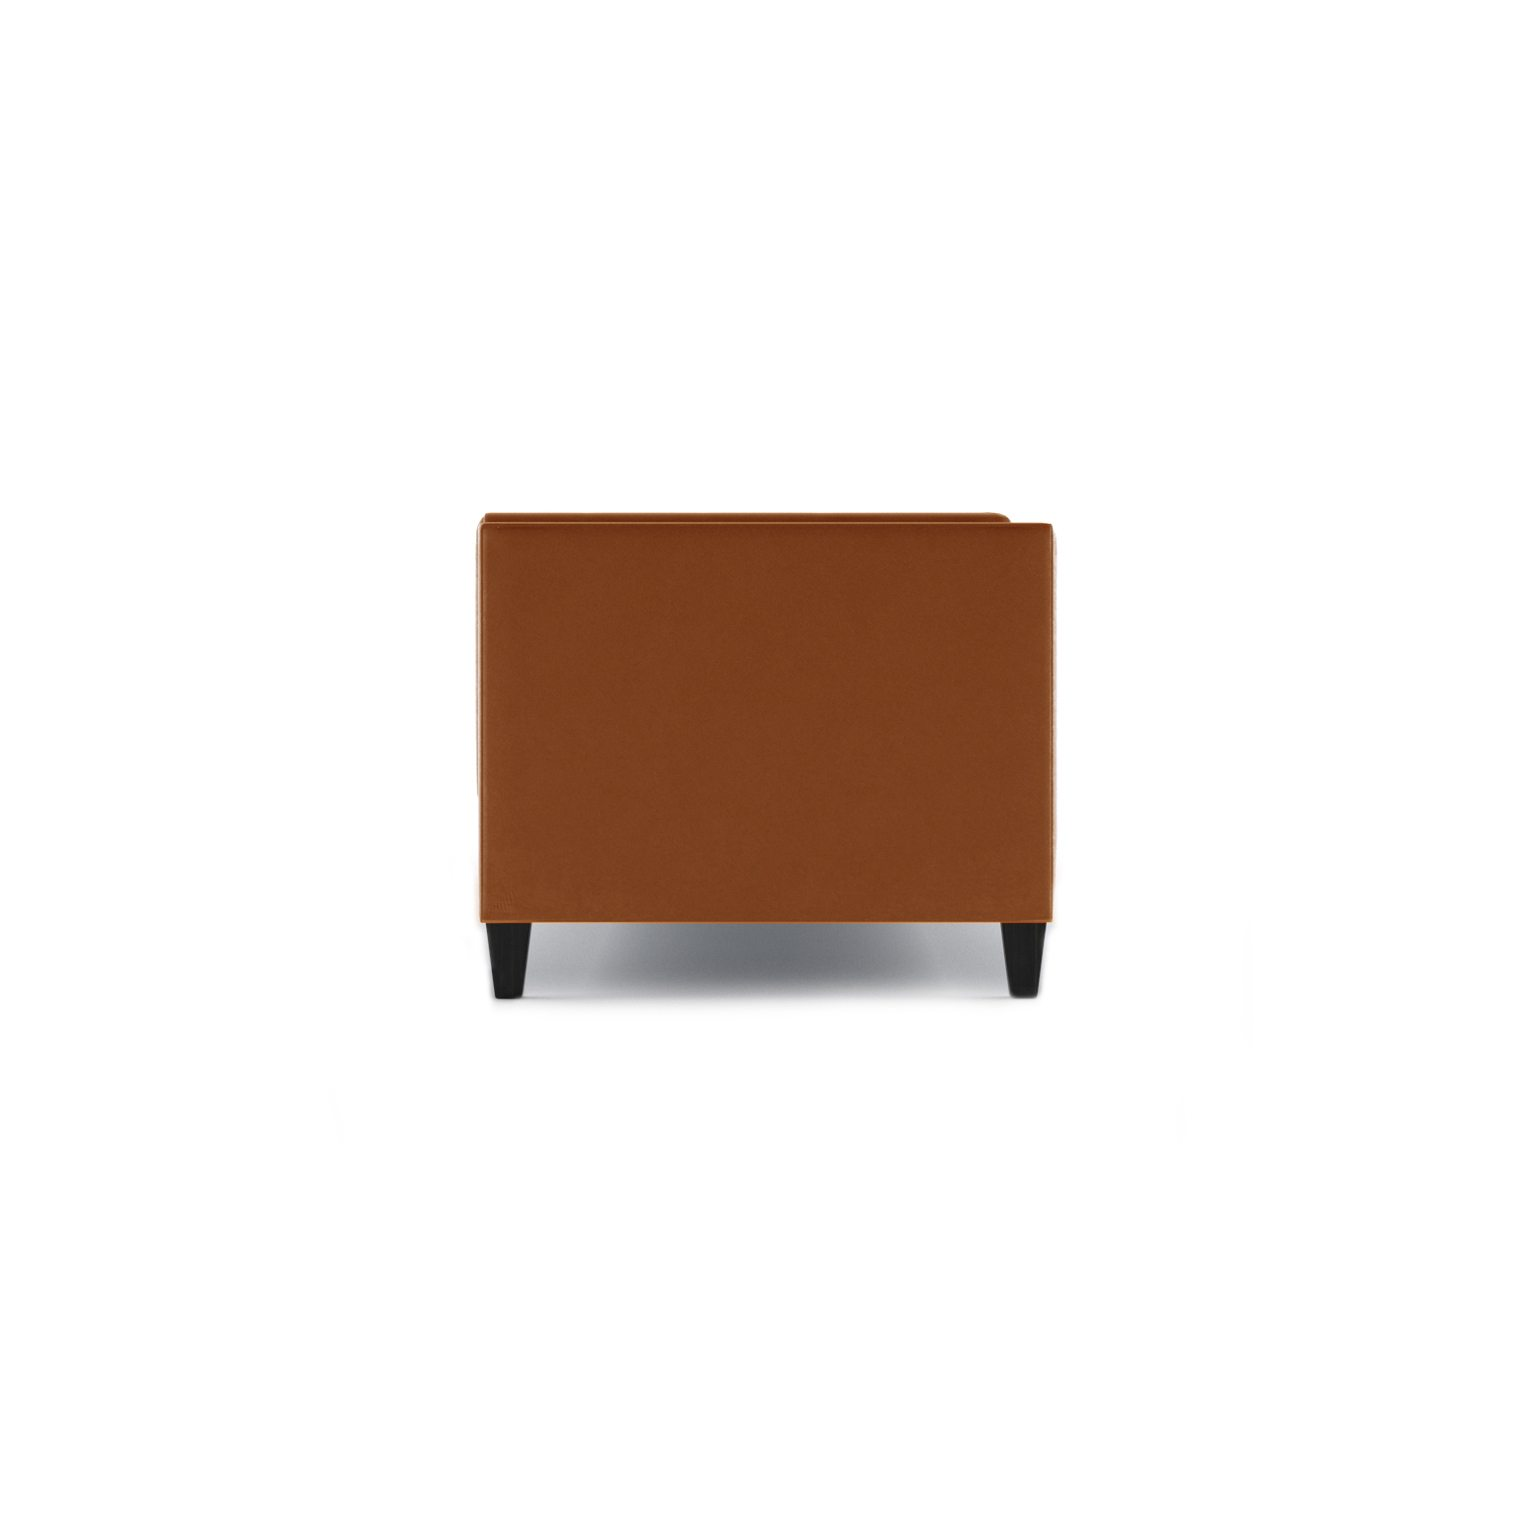 Coltrane Three and a Half Seater Sofa by Bonham & Bonham Burnt Orange 04